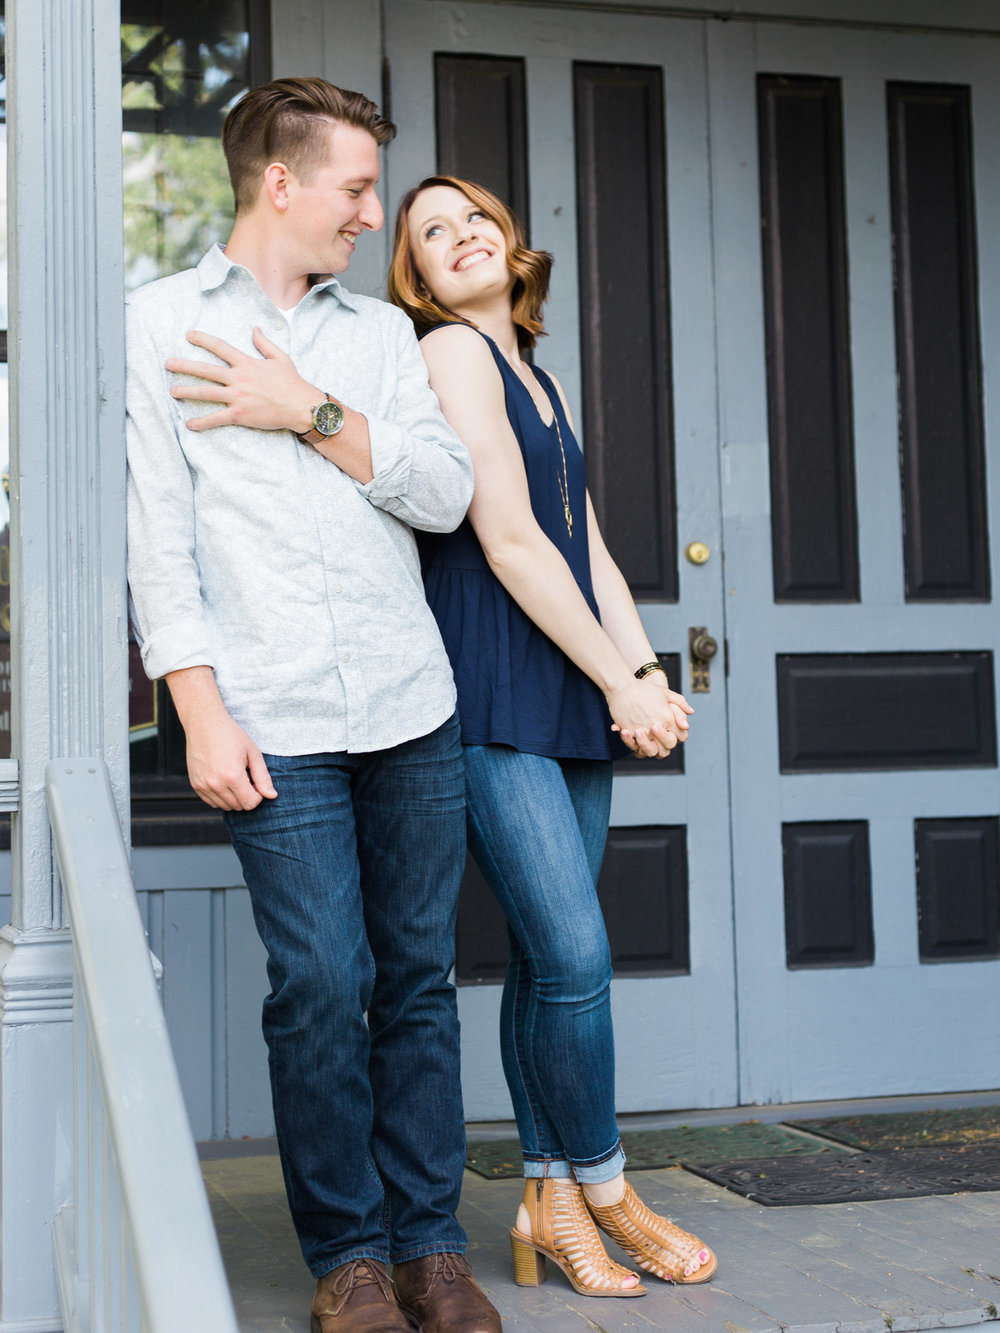 Adorable Engagement Session in Peninsula, Ohio by Cleveland Wedding Photographer Matt Erickson Photography